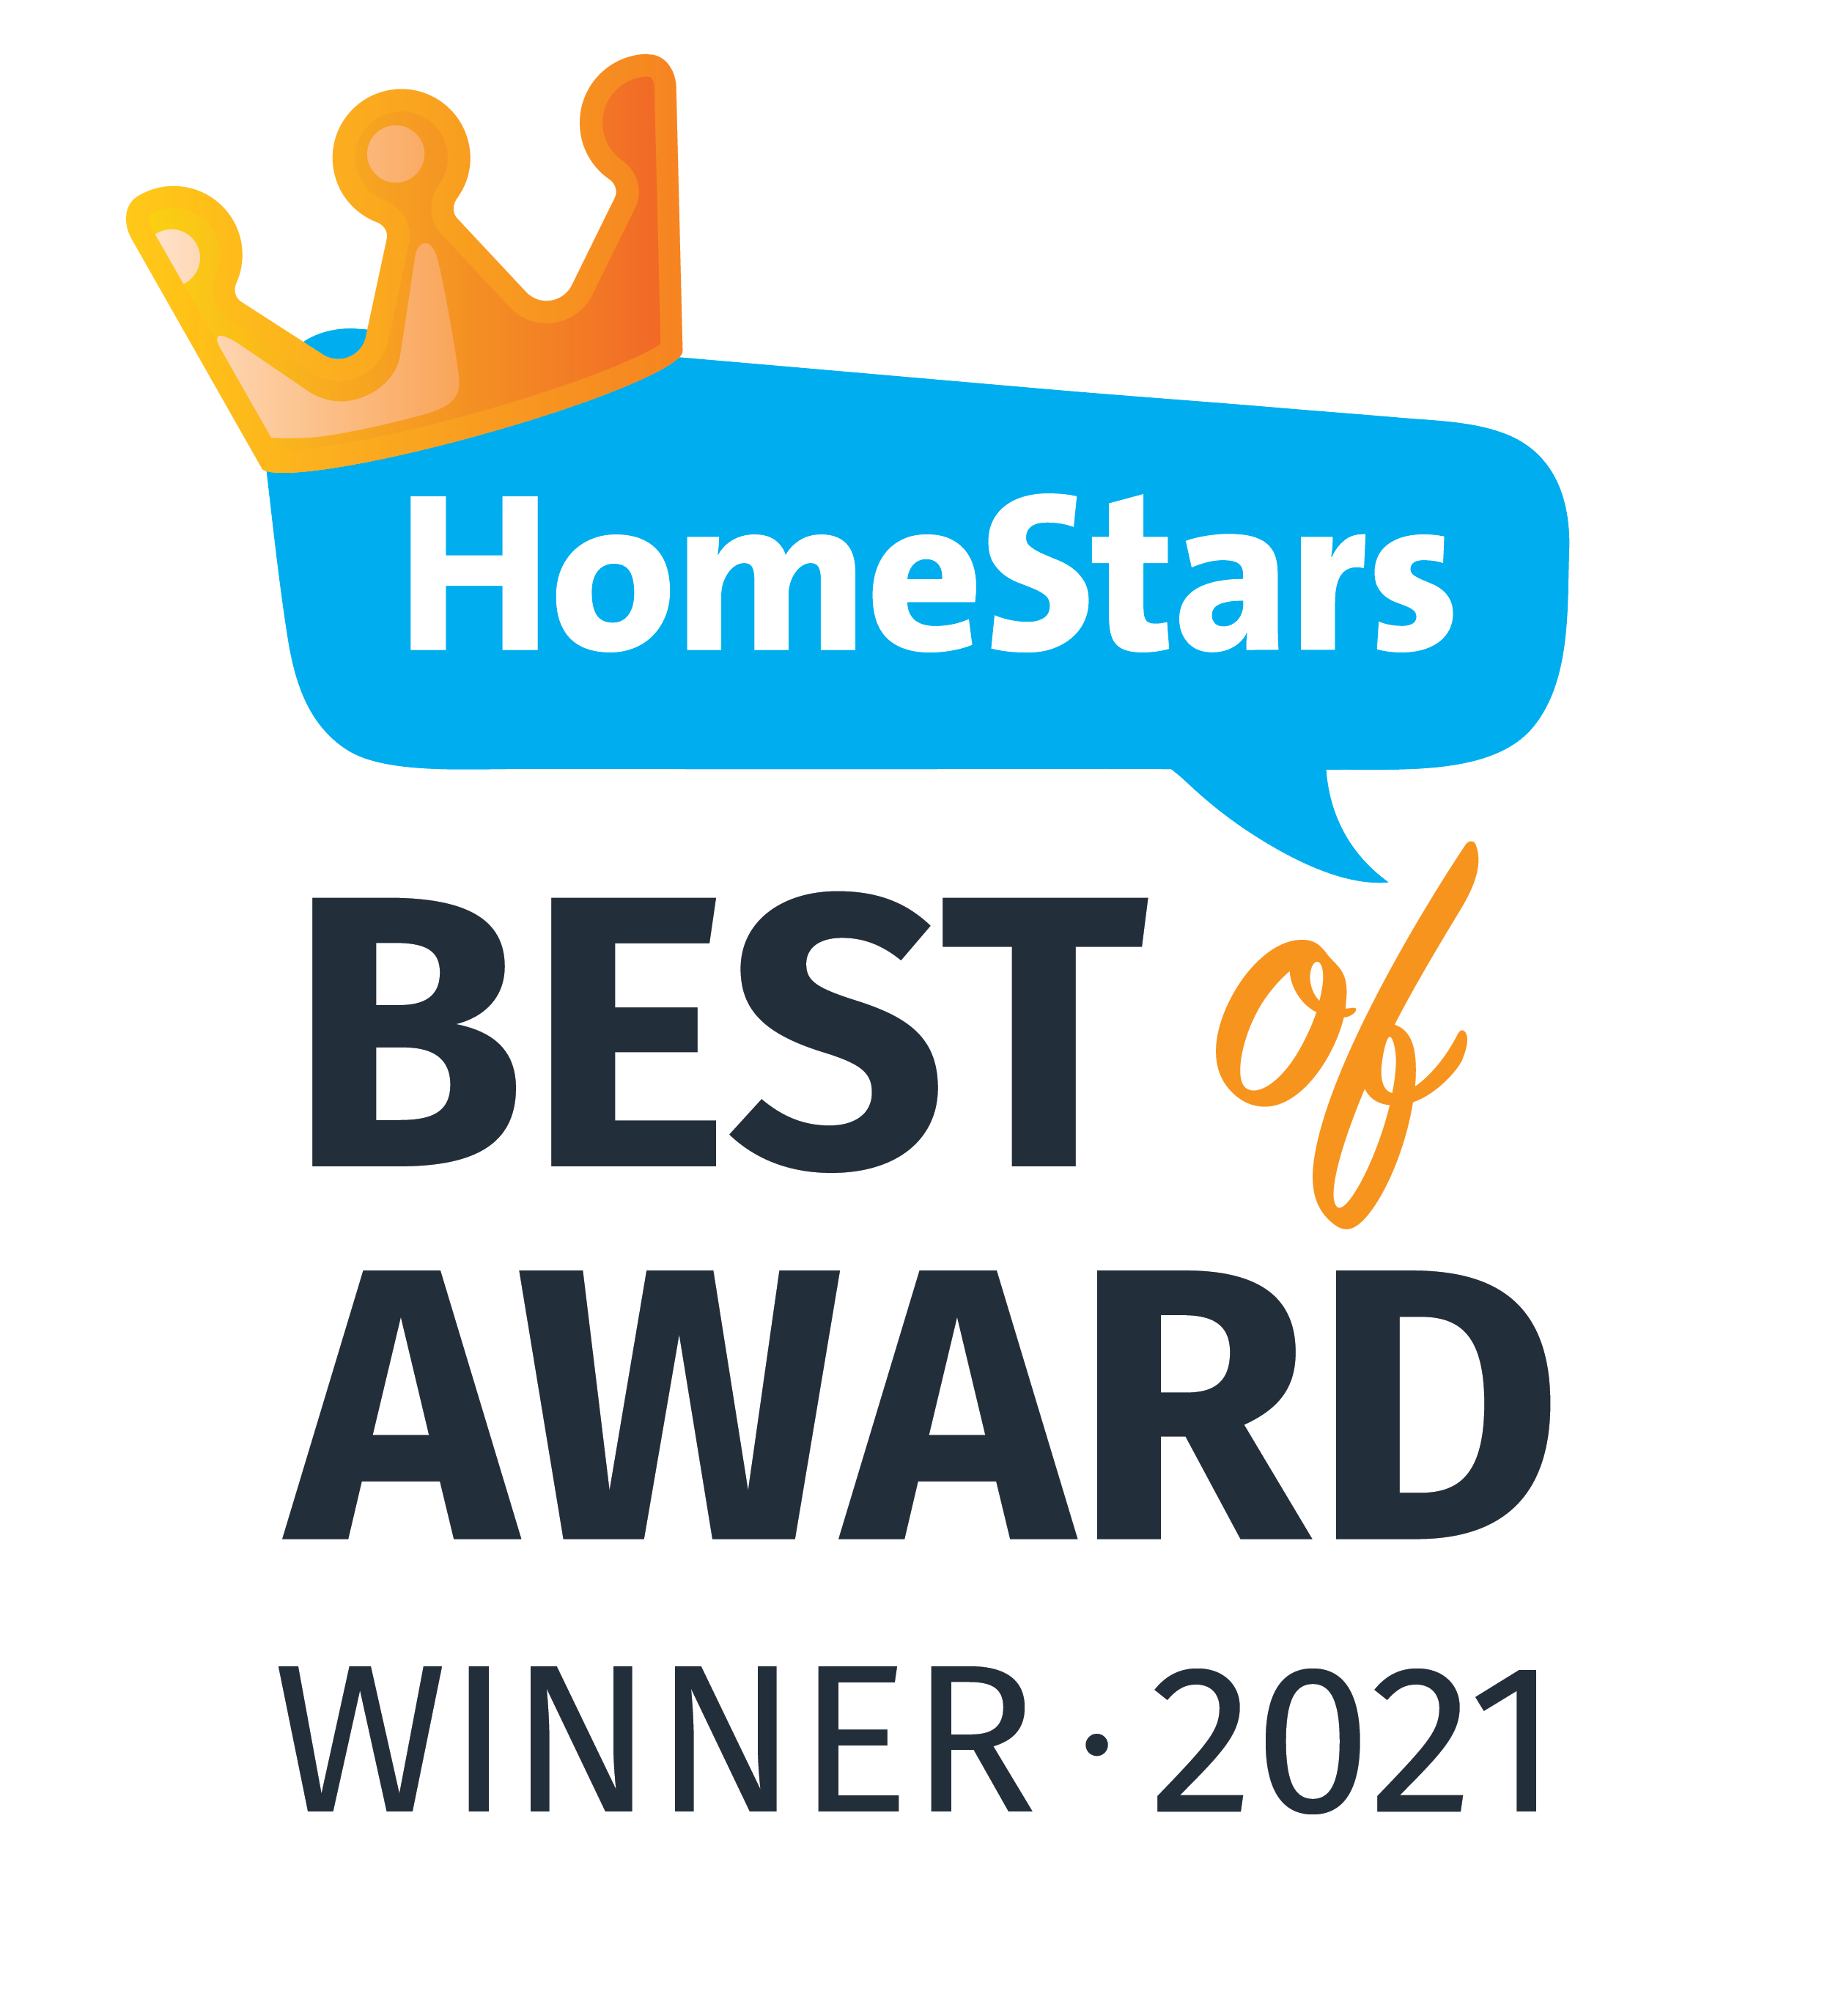 HomeStars Best of Aware Winner 2021